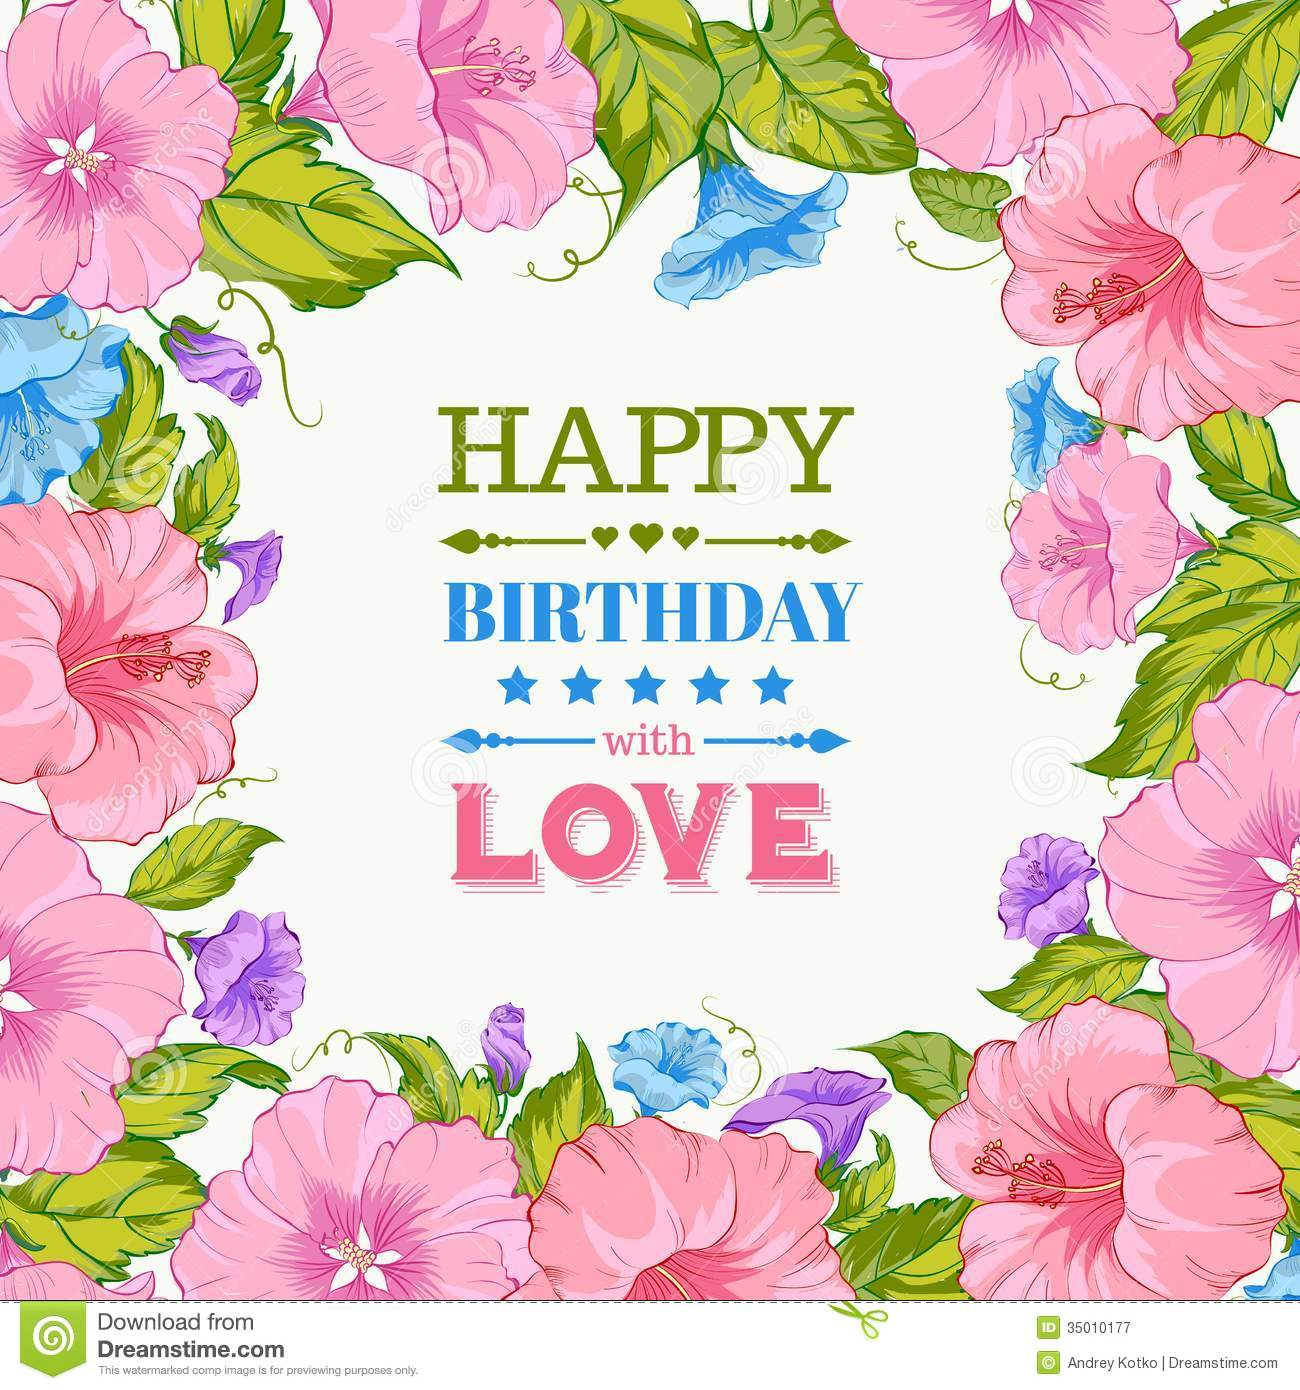 birthday wishes free download images ; happy-birthday-card-vector-illustration-35010177